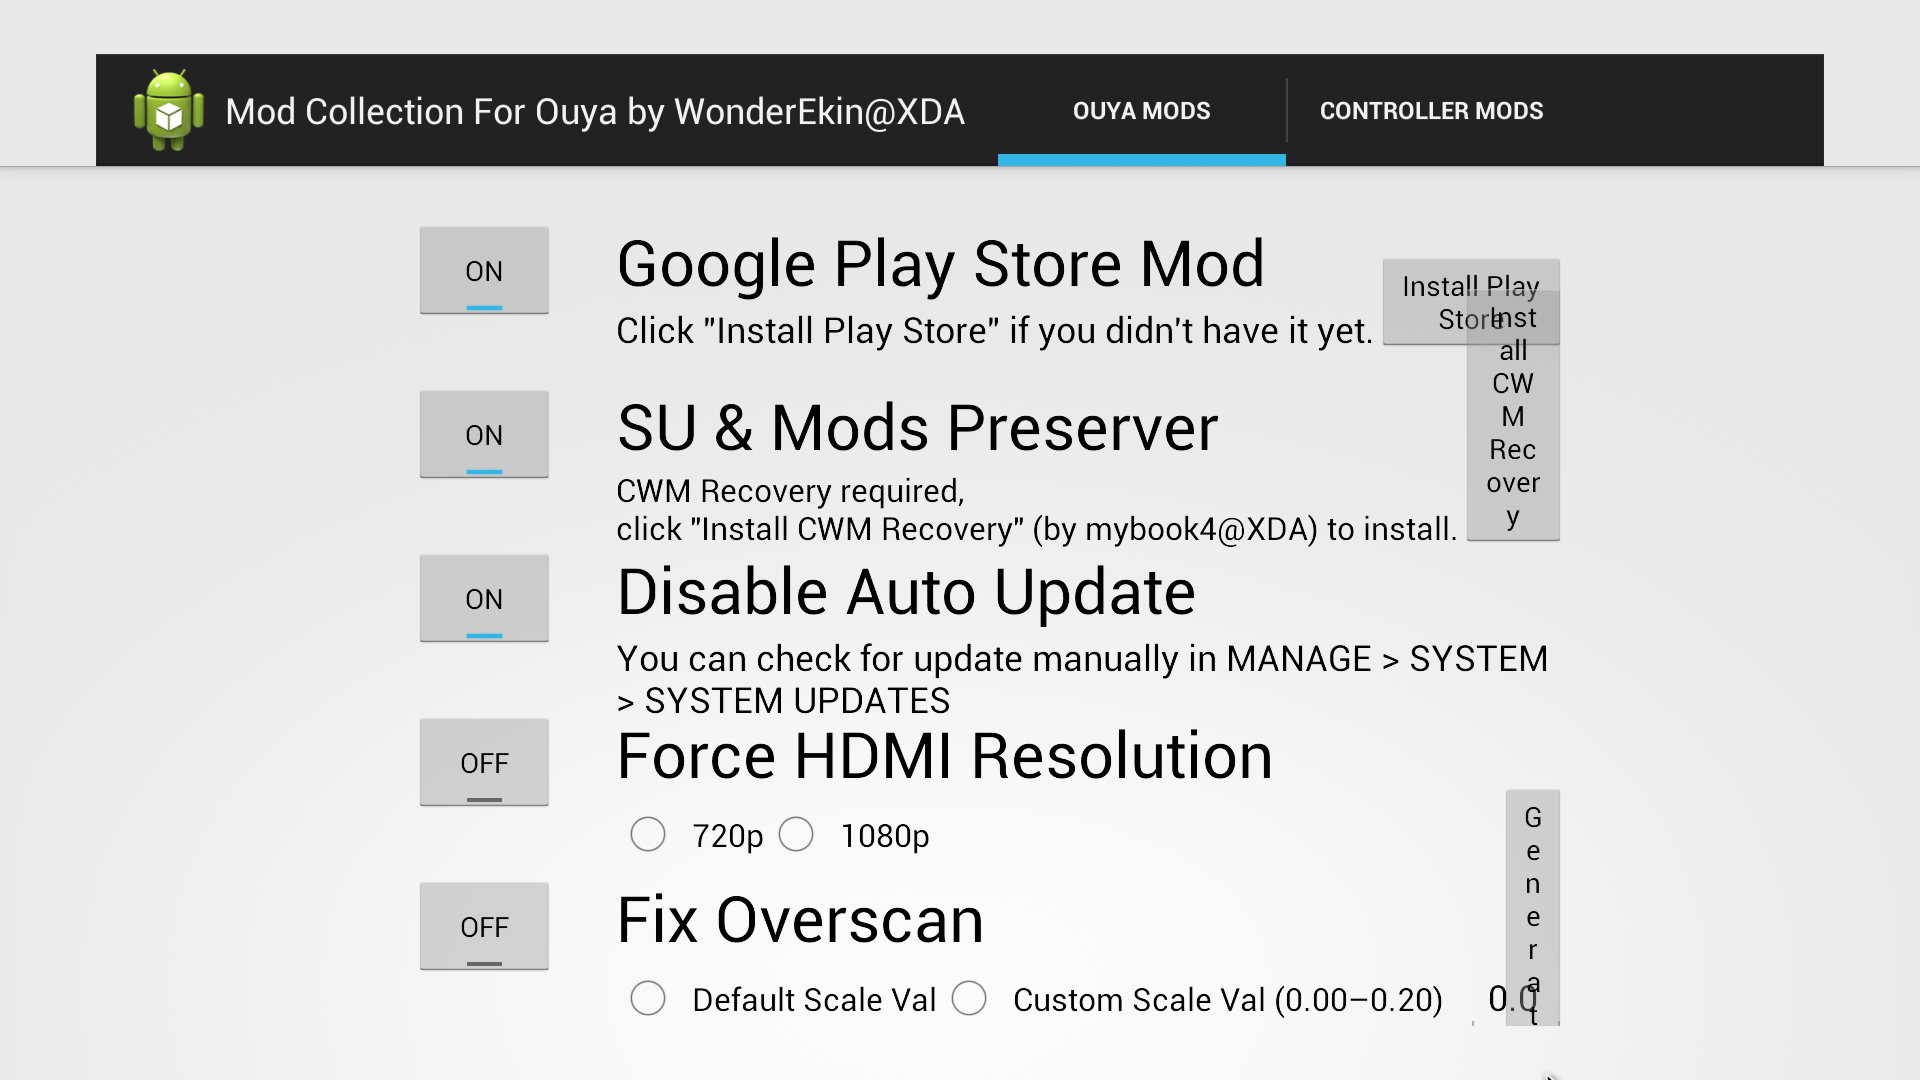 Mod Collection for Ouya